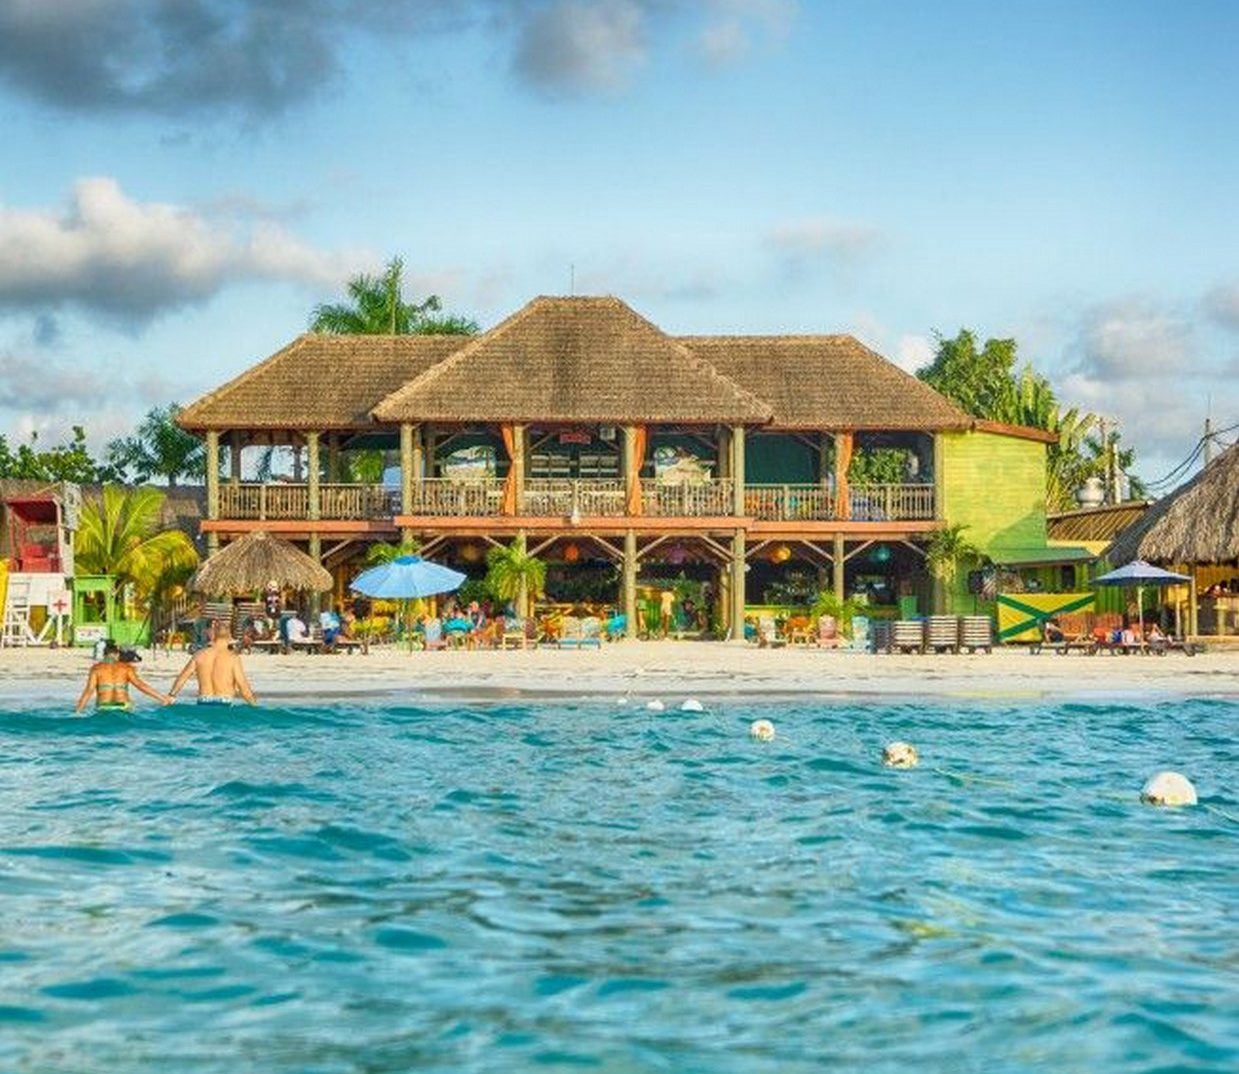 Negril Beach Experience & Rick's Cafe 3